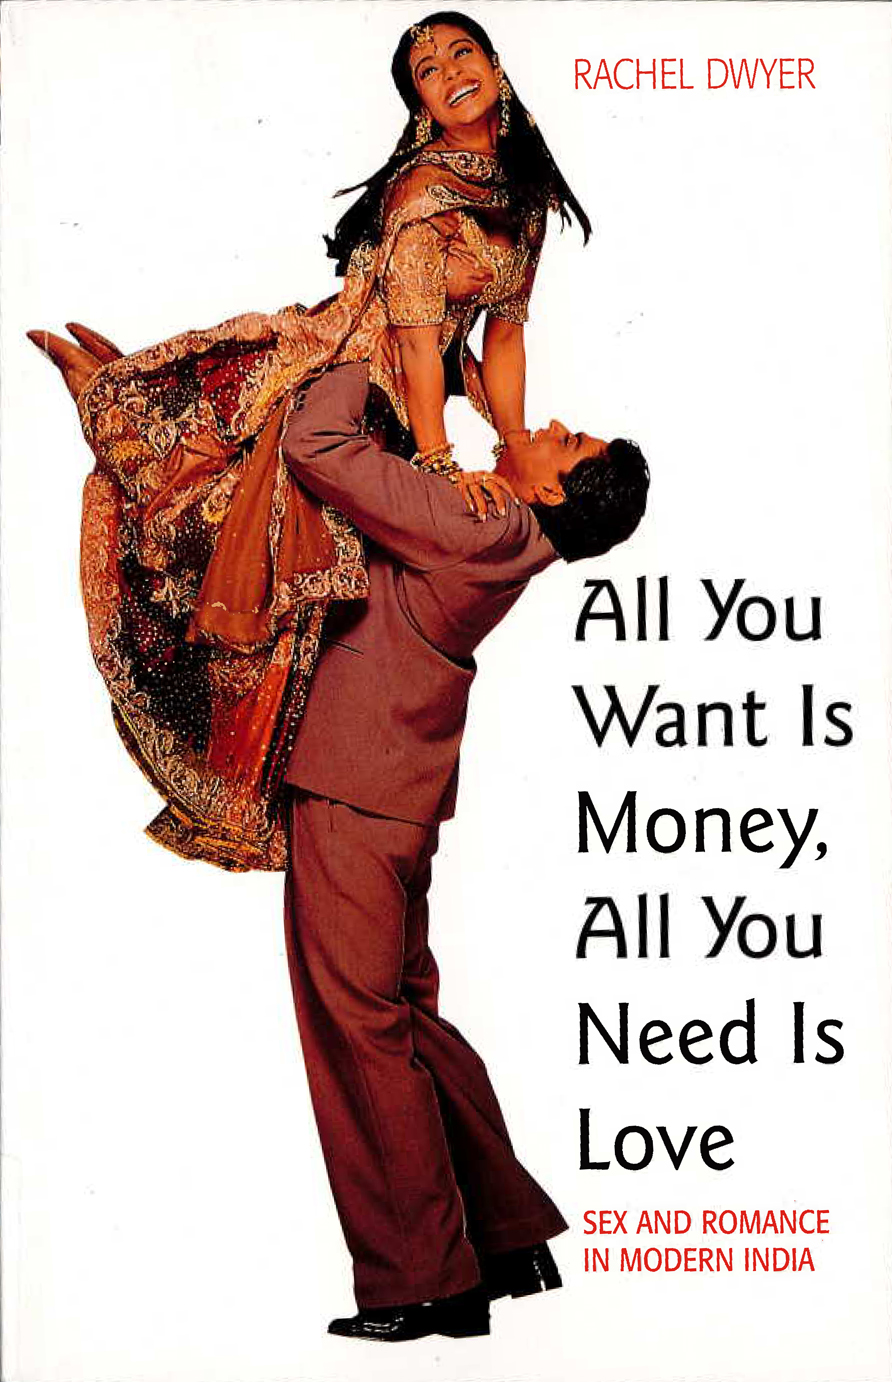 All you want is money, all you need is love